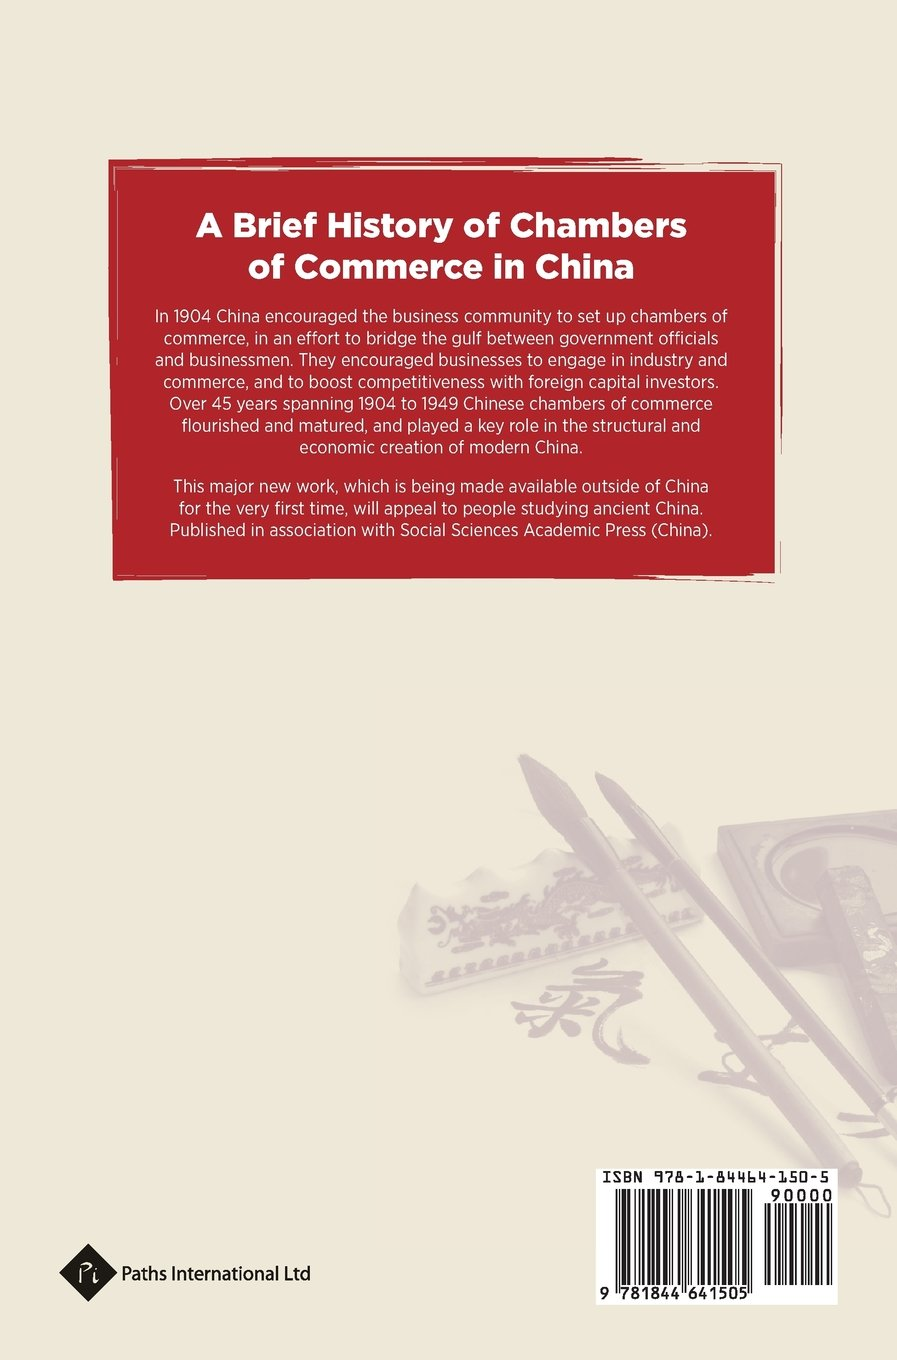 A Brief History of Chambers of Commerce in China (Economic History in China) by Paths International Ltd.